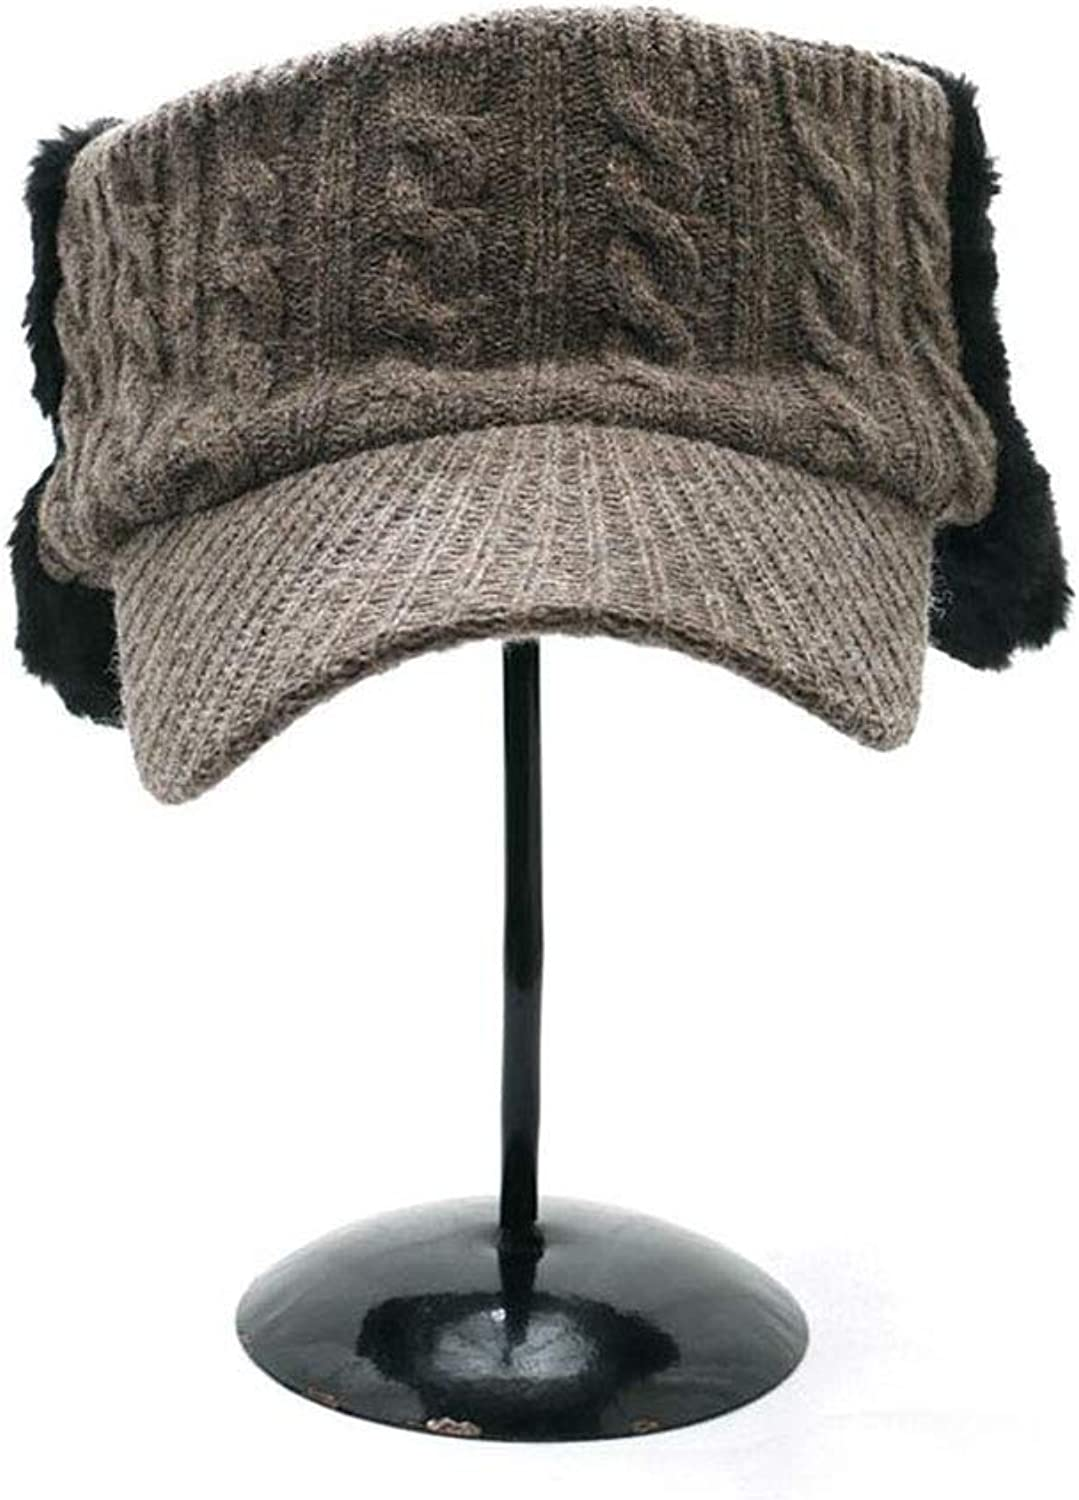 Earmuffs Wool hat, Female Winter top Woolen Warm hat Cute Knit hat Cap, Tide Cap, 5 colors,Brown